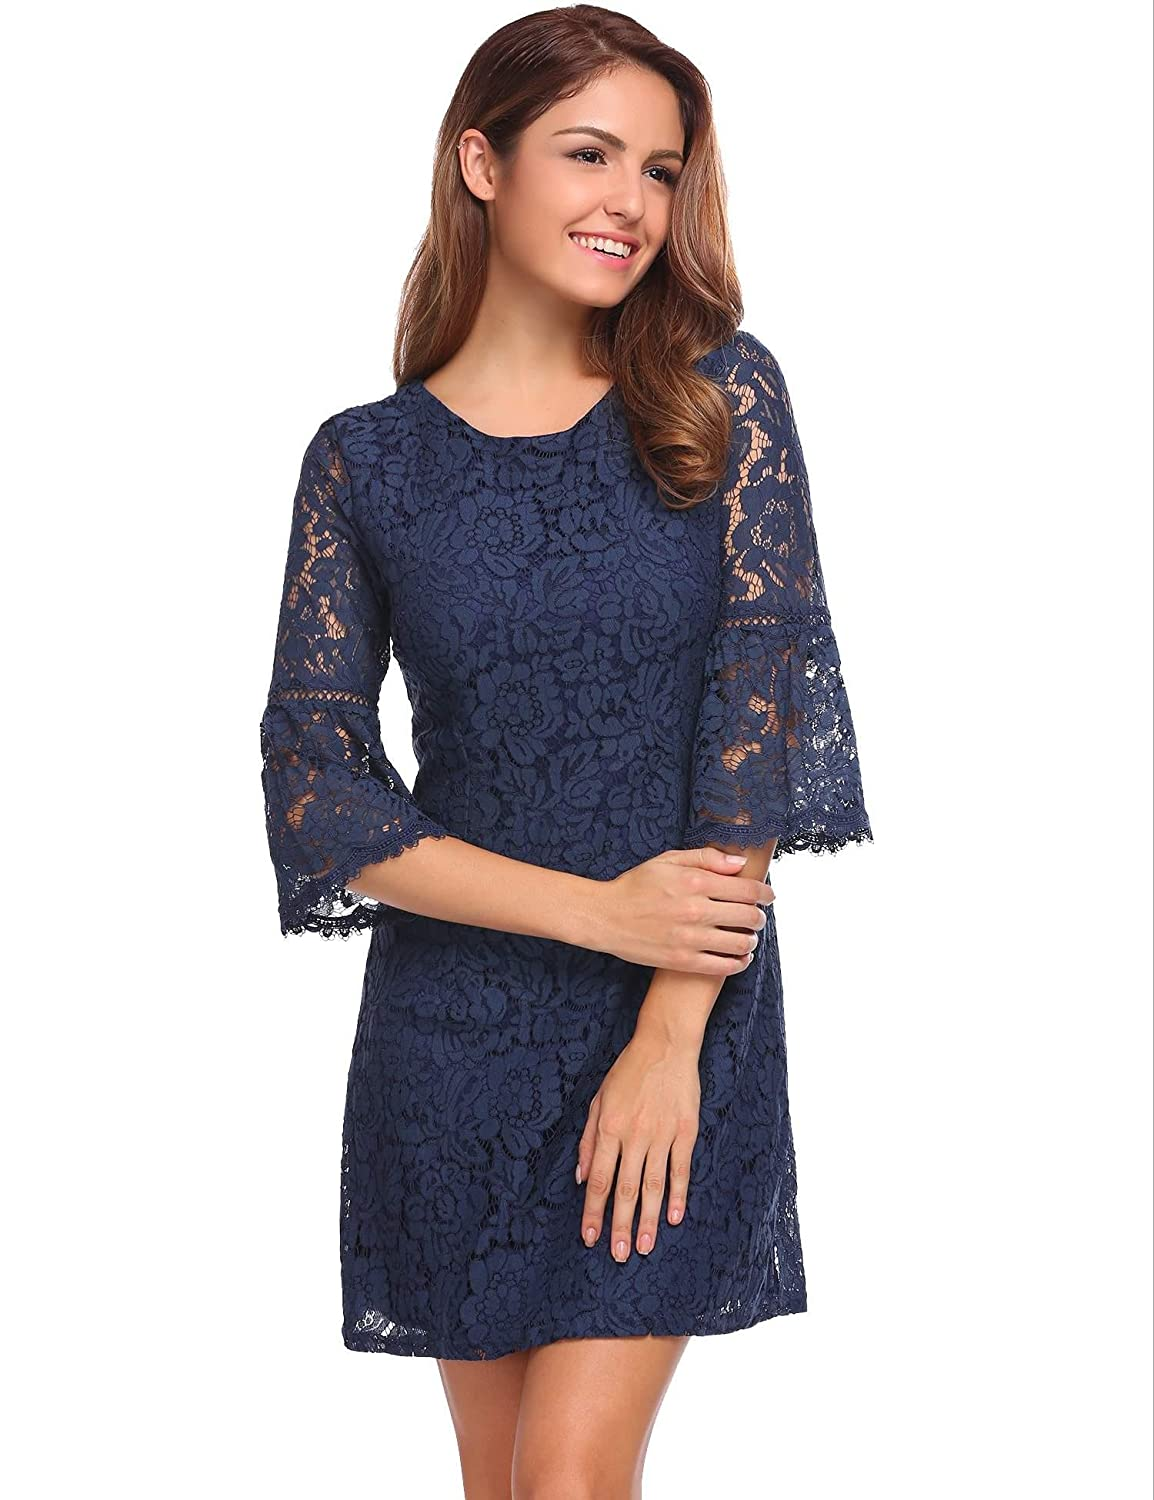 a1ff60a4e02 evokem Women s Casual 3 4 Flare Sleeve Homecoming Party Floral Lace A-Line  Dresses  Amazon.in  Clothing   Accessories